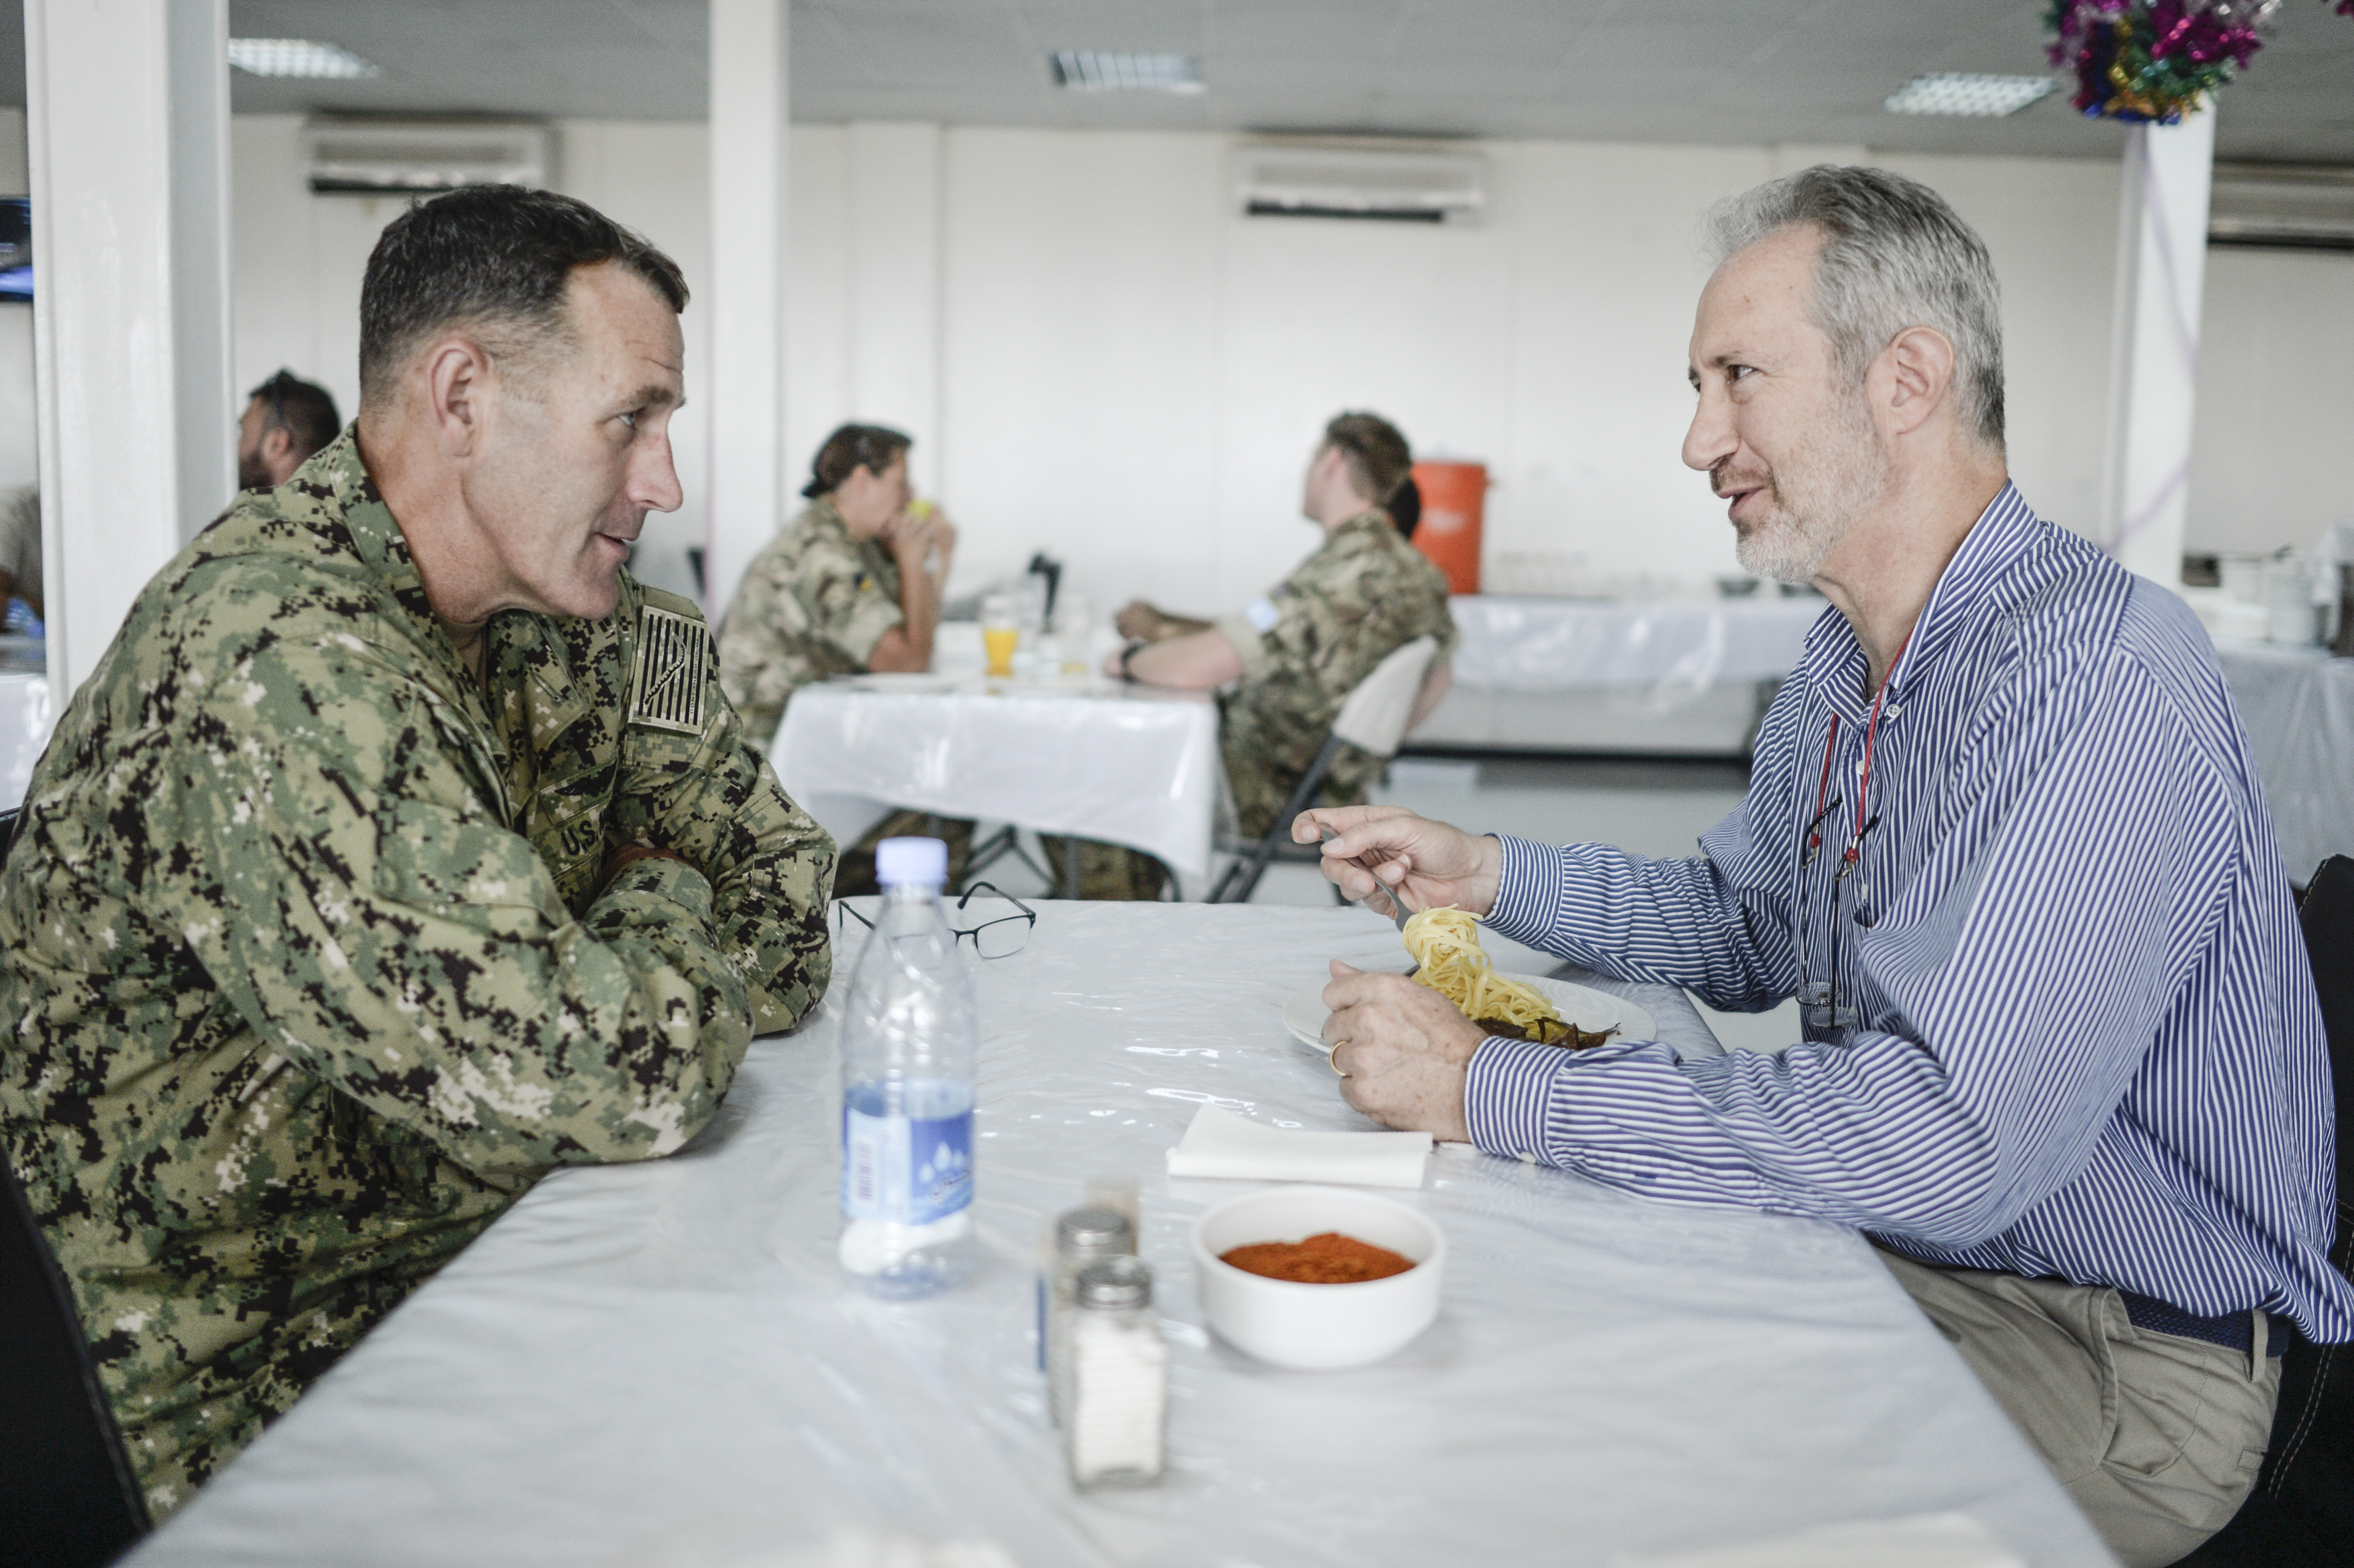 MOGADISHU, SOMALIA- U.S. Navy Rear Adm. William Wheeler III, Combined Joint Task Force-Horn of Africa (CJTF-HOA) deputy commander, and U.S. Ambassador Stephen Schwartz, U.S. Ambassador to Somalia, meet over  lunch to discuss the current political and economic environment in Somalia Dec. 19, 2016. Such meetings improve the capability of U.S. and partner nations to create favorable conditions for the expansion of stable governance and economic development in Somalia.